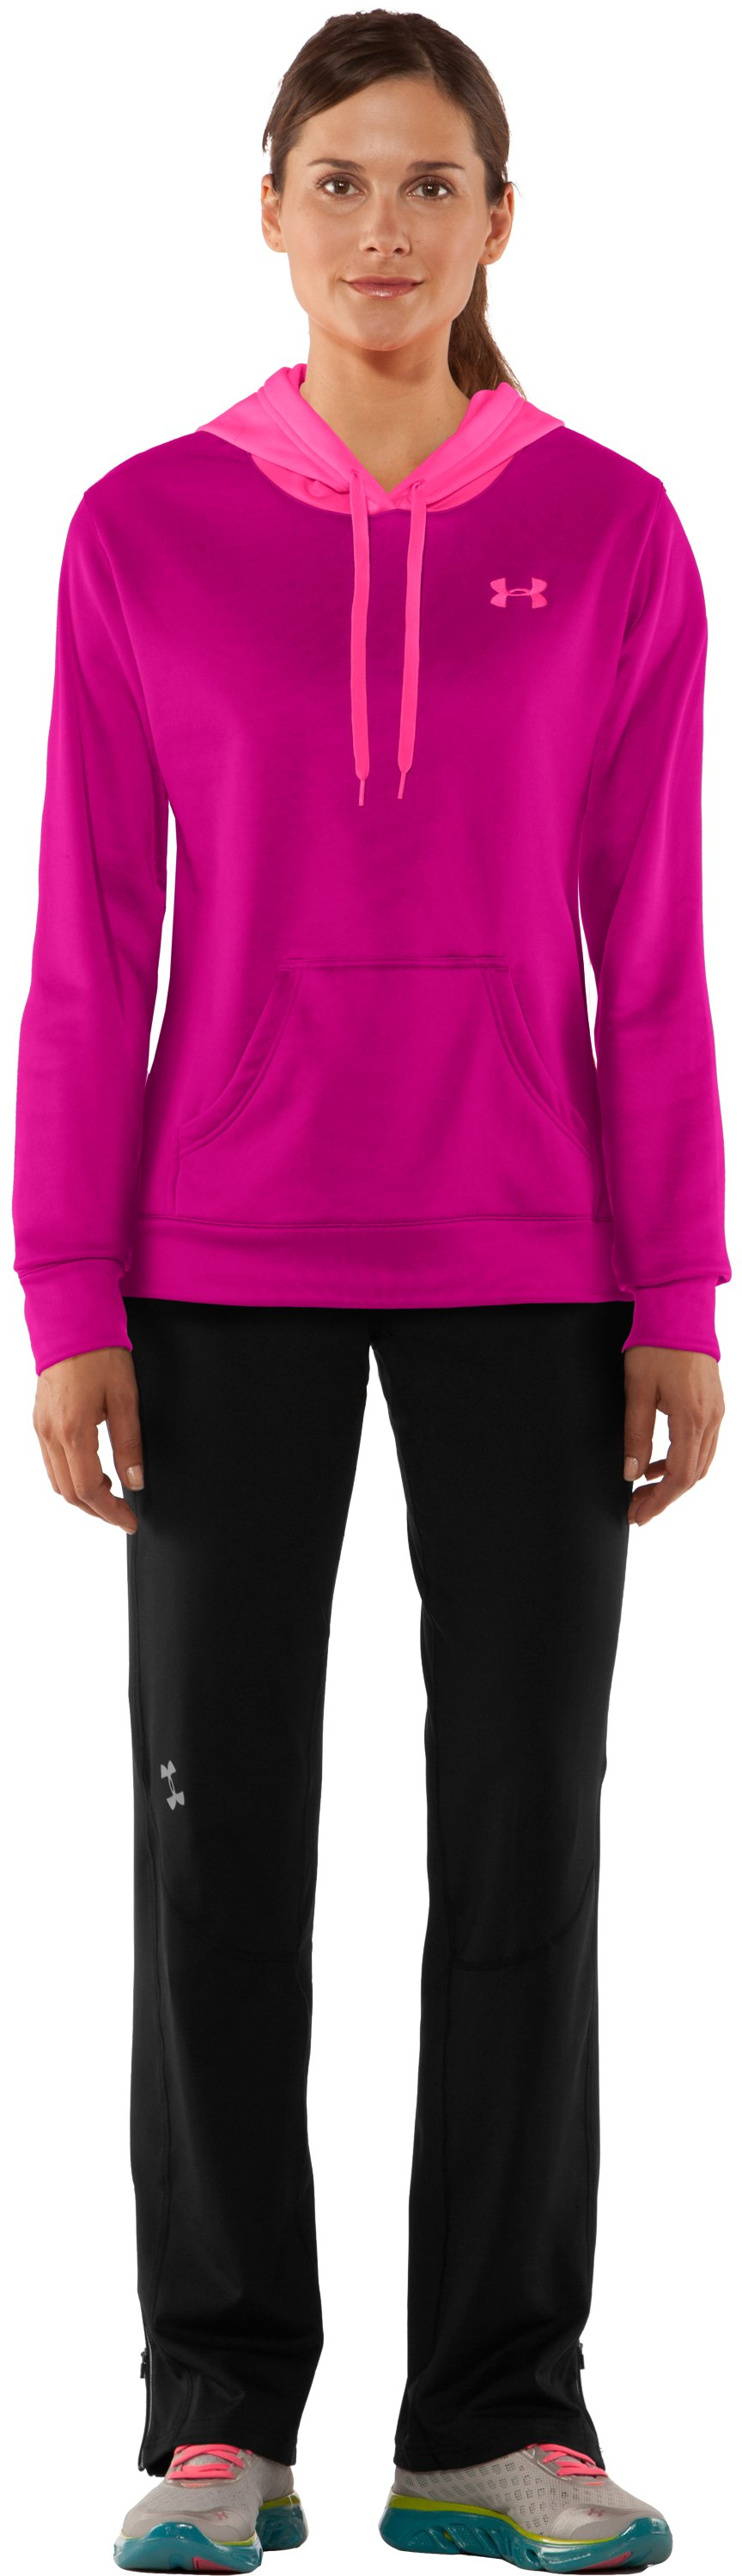 Women's Armour® Fleece Divide Hoodie, Tropic Pink, zoomed image